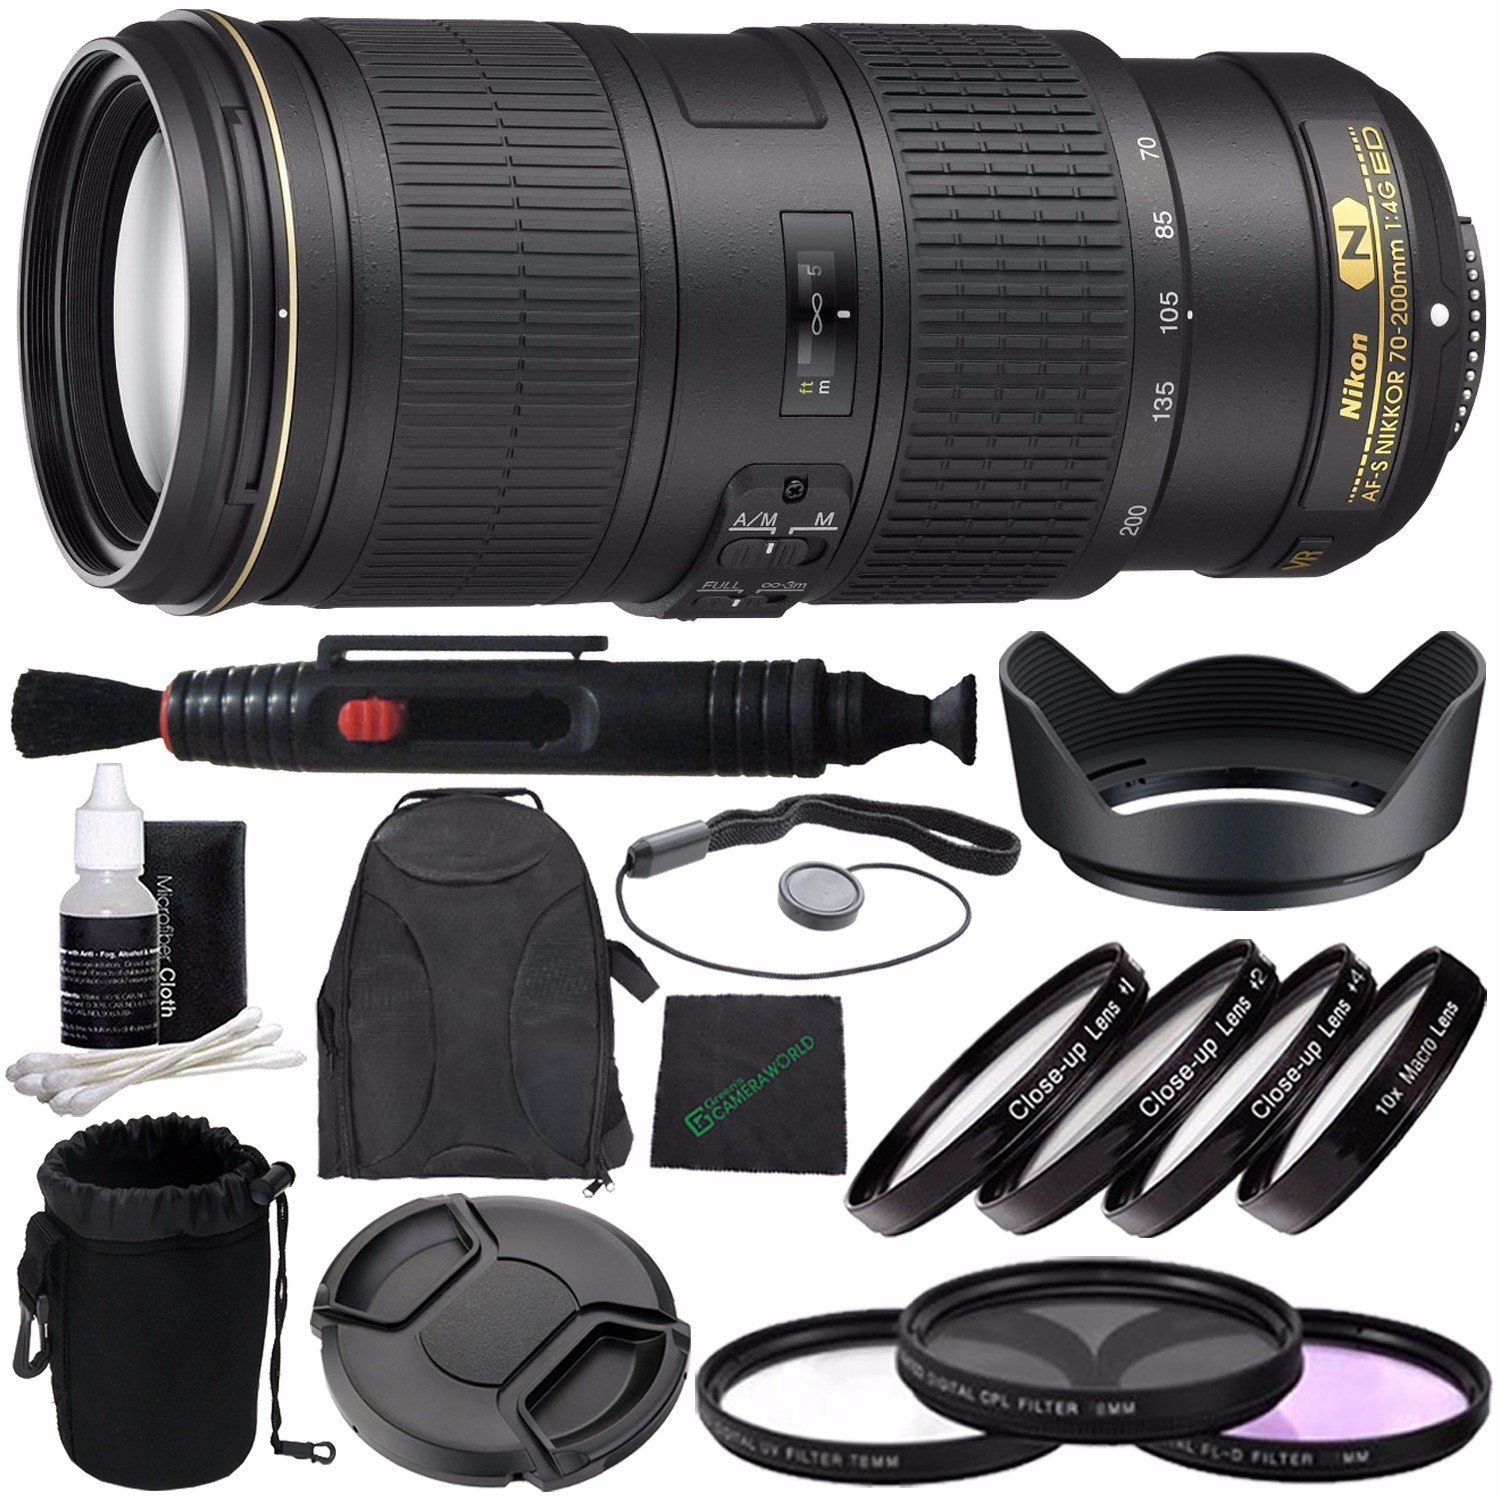 Nikon AF-S NIKKOR 70-200mm f/4G ED VR Lens + 67mm 3 Piece Filter Set (UV, CPL, FL) + 67mm +1 +2 +4 +10 Close-Up Macro Filter Set with Pouch + LENS CAP 67MM + 67mm Lens Hood + Cloth + Pouch Bundle